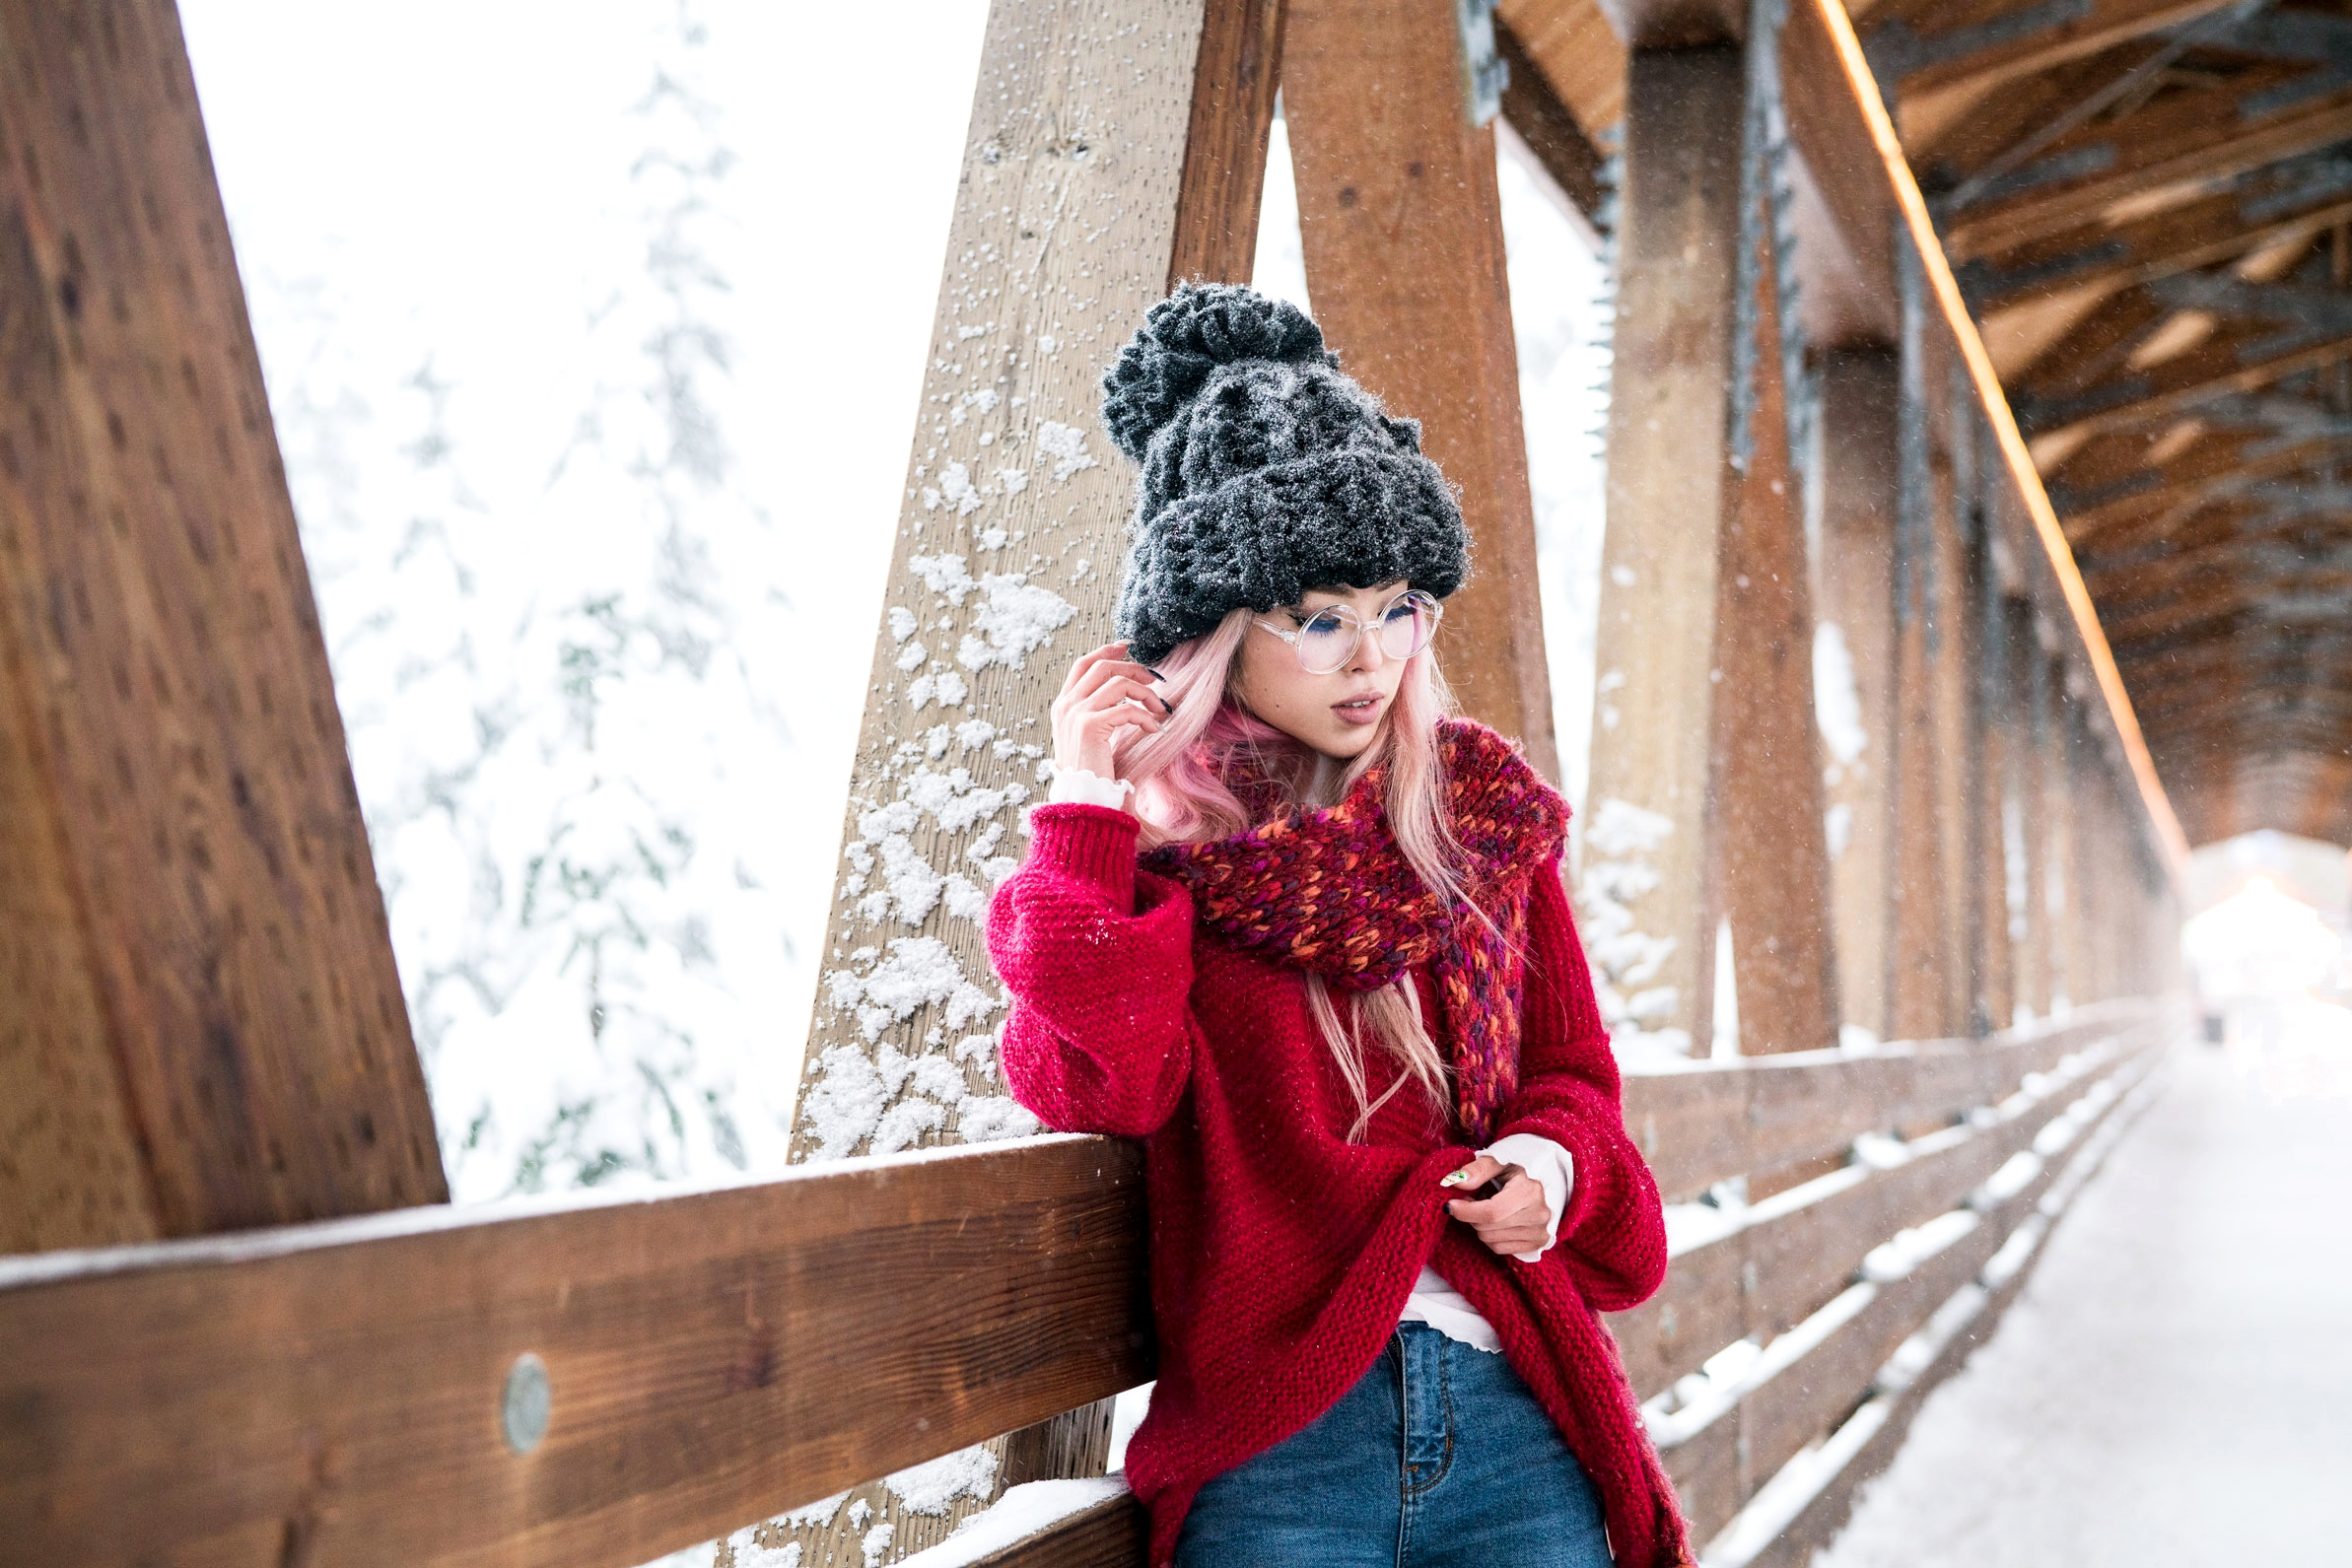 H&M Multi Colored Scarf, Transparent Clear Lens Glasses, Free people All Mine Sweater, Free People Modern Cuff Layering Top, Free People Ace High Rise Jeans, Free People Bobbi Chunky Pom Beanie, EGO Ankle Boots, Aika's Love Closet, Seattle Fashion Blogger from Japan, Pink Hair 13